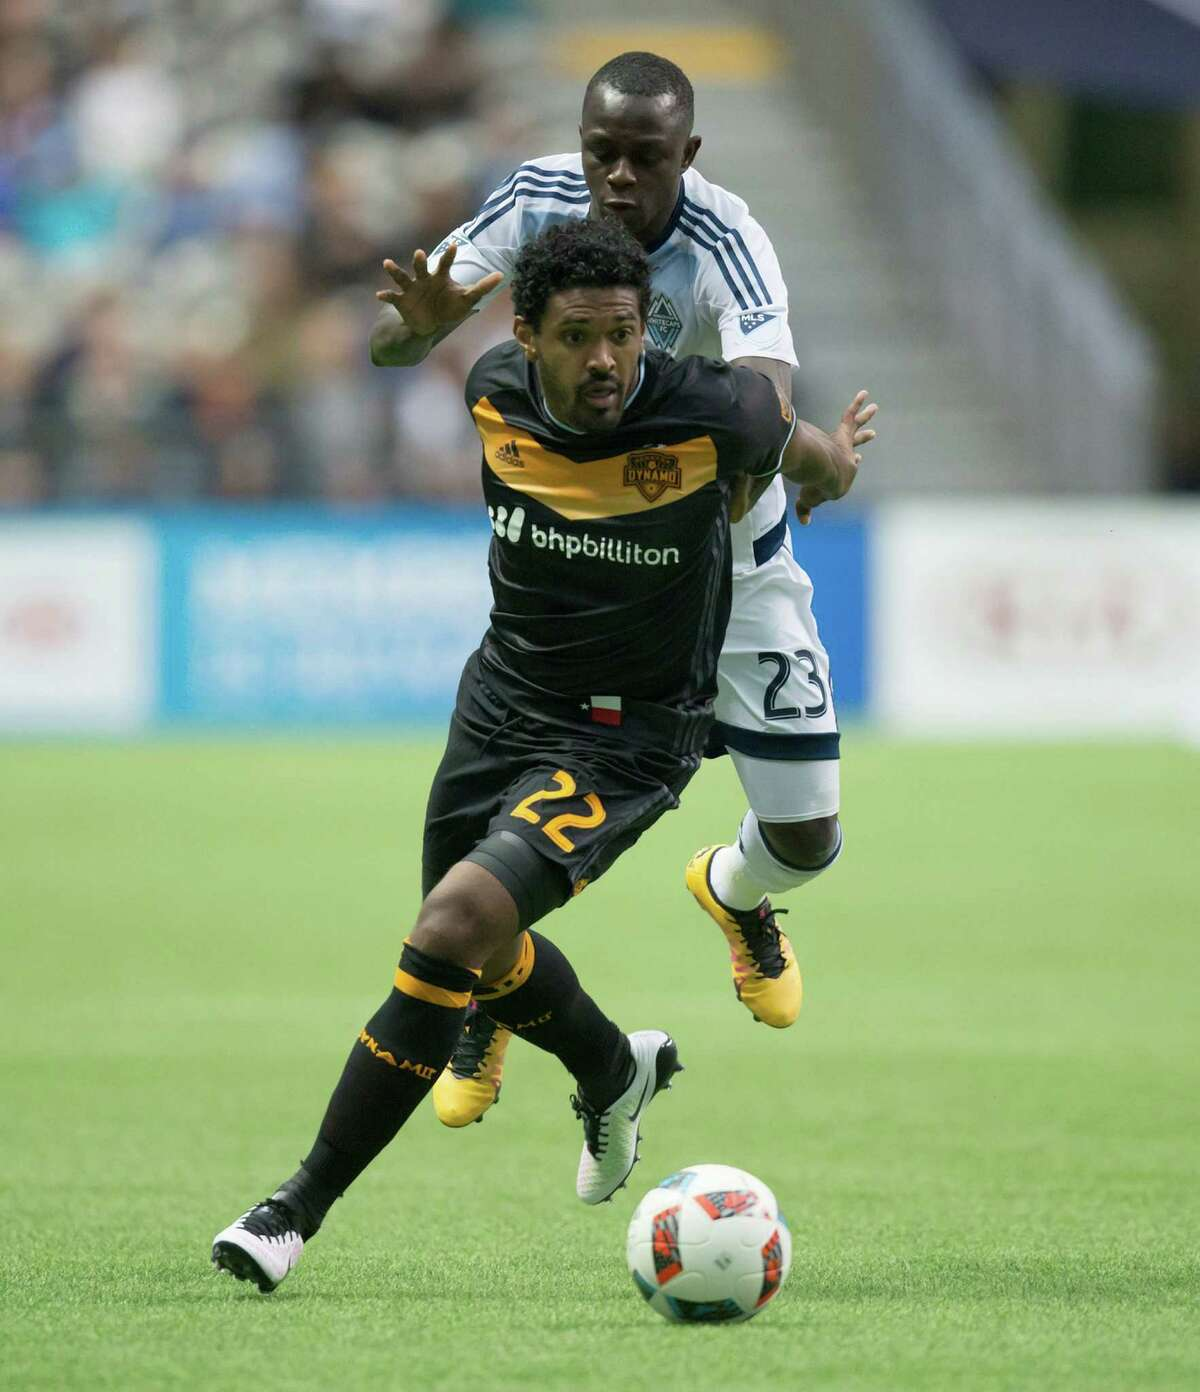 Houston Dynamo's Sheanon Williams, front, fights off Vancouver Whitecaps' Kekuta Manneh as he moves the ball during the first half of an MLS soccer game in Vancouver, British Columbia, Saturday May 28, 2016. (Darryl Dyck/The Canadian Press via AP)